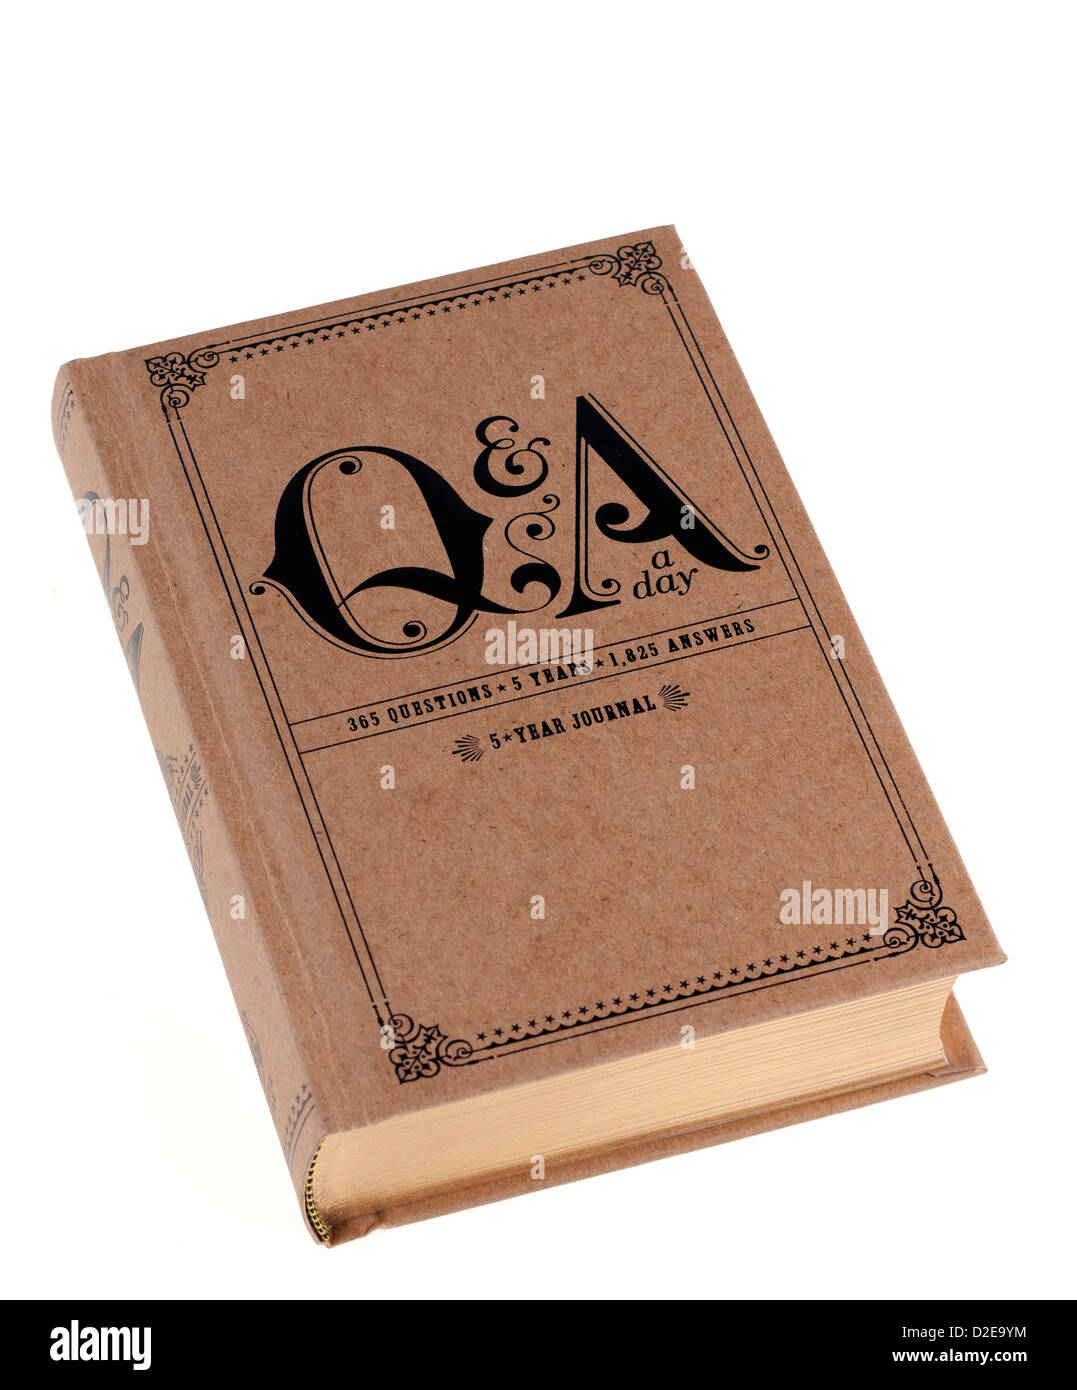 Five year compact personal journal - Stock Image